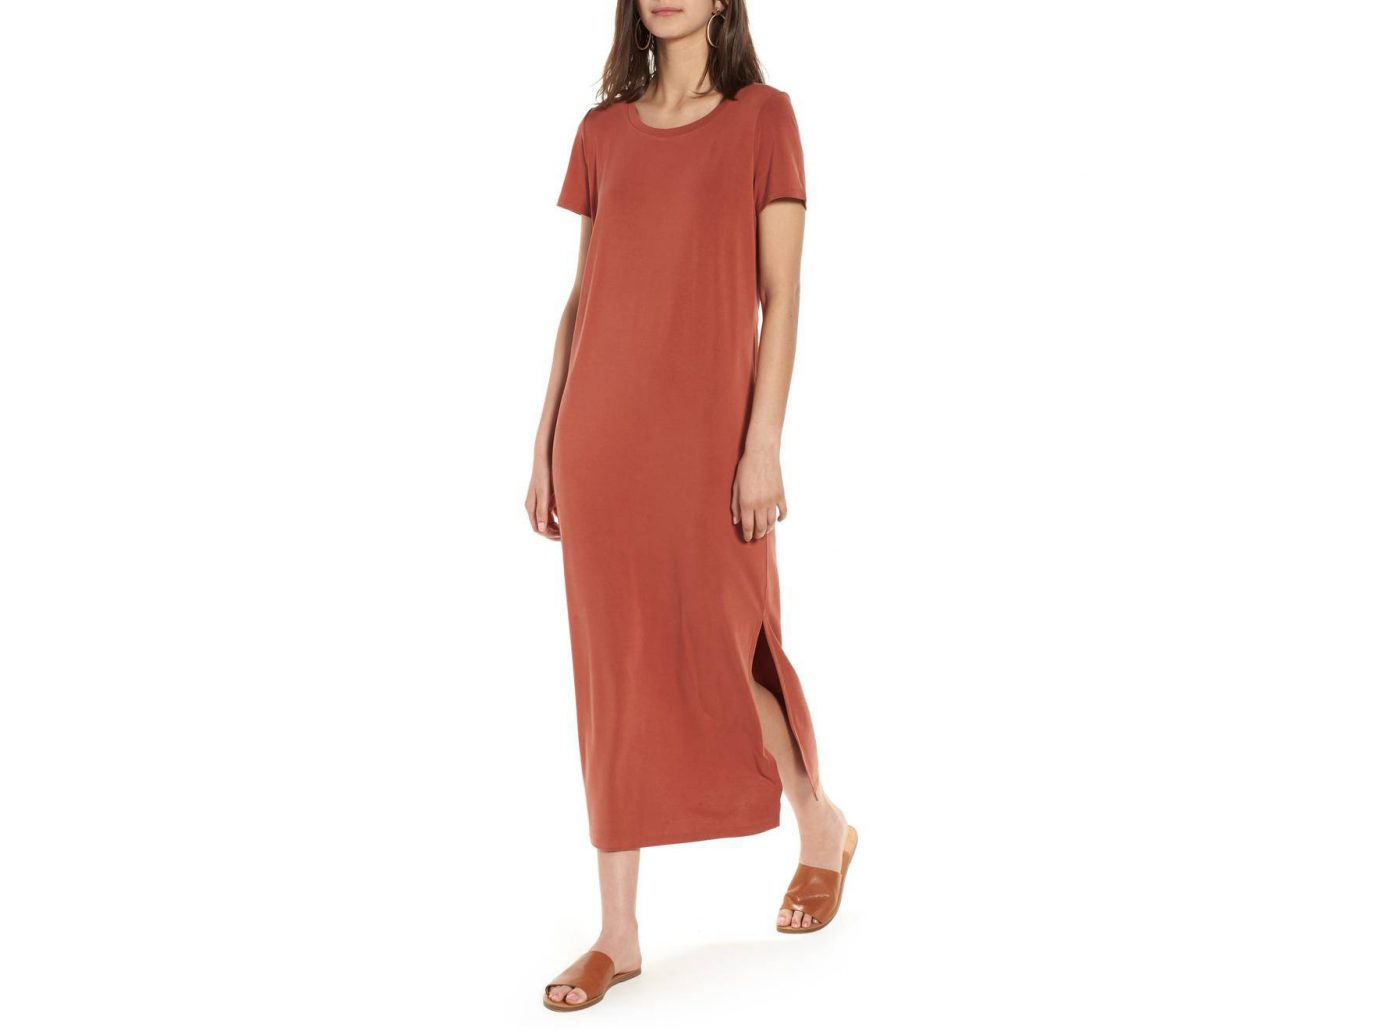 Japan Packing Tips Style + Design Travel Shop clothing day dress dress shoulder fashion model neck peach joint sleeve